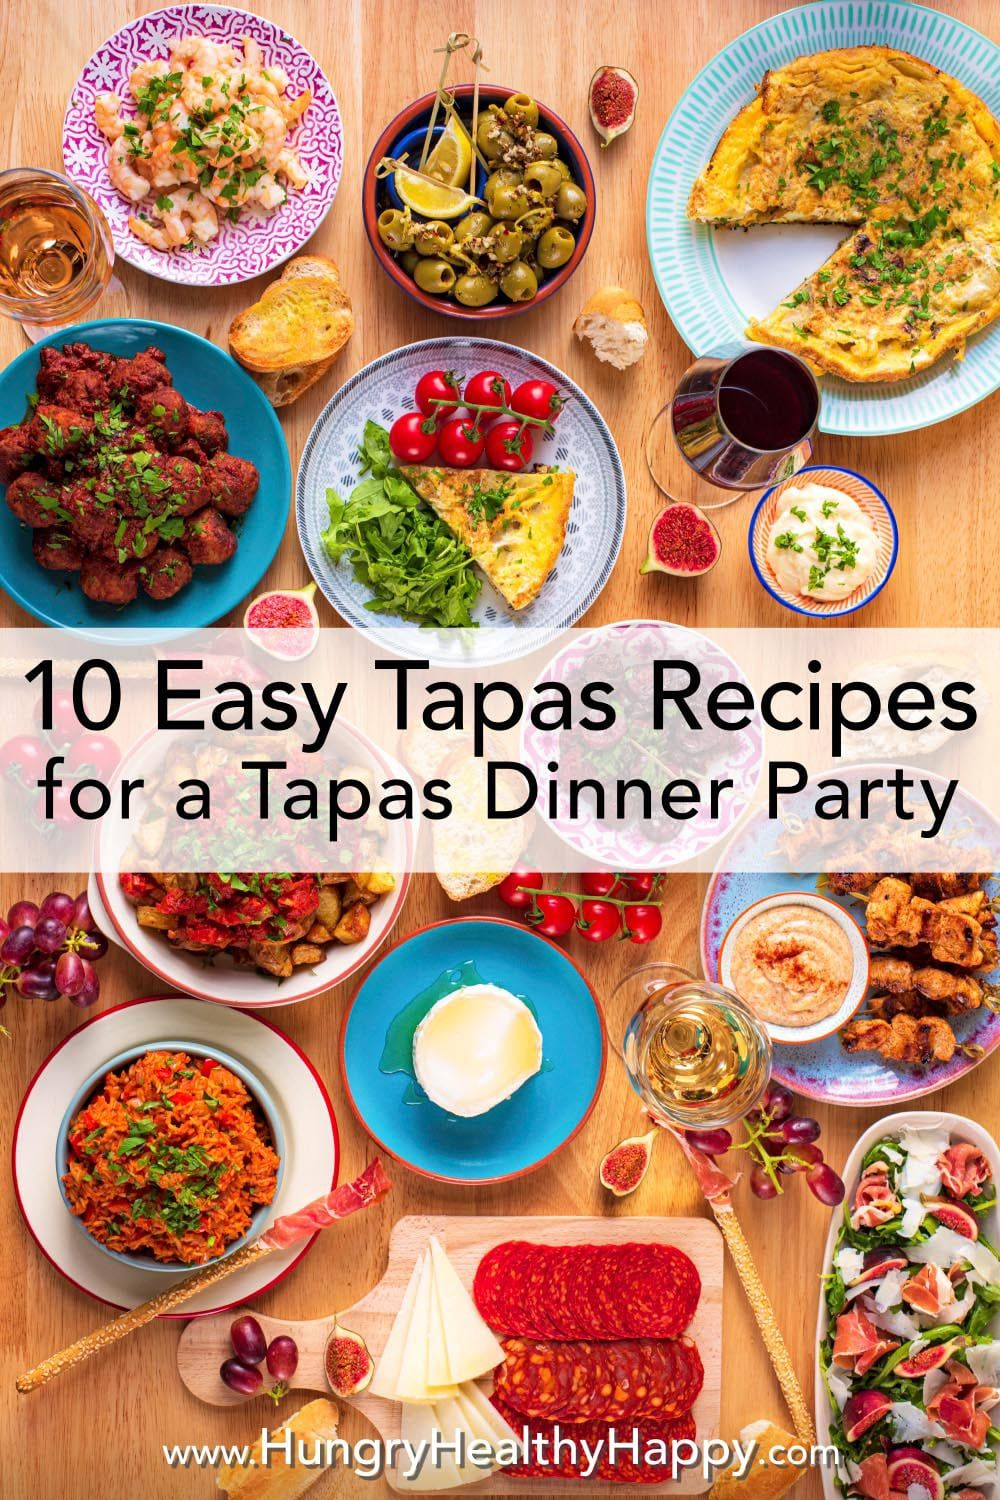 10 Easy Tapas Recipes for a Tapas Dinner Party - Hungry Healthy Happy